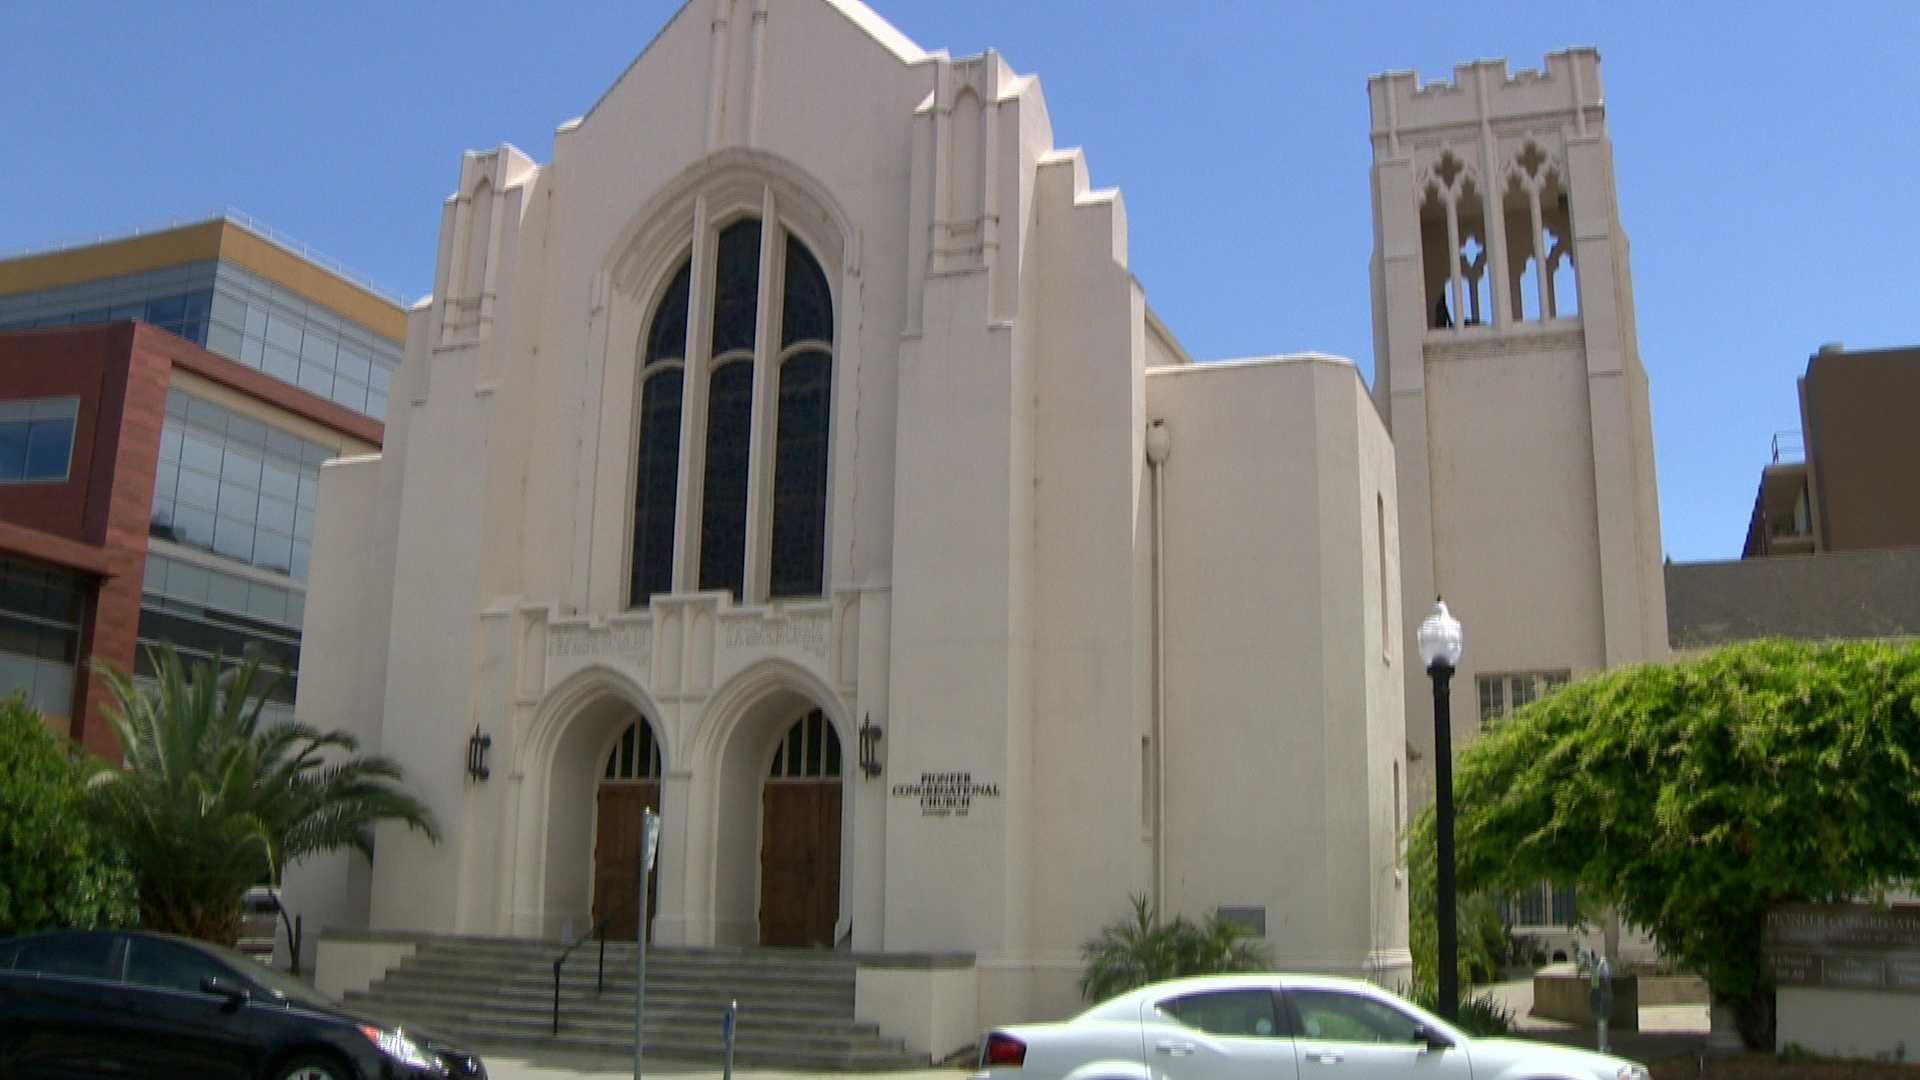 Pioneer Congregational United Church of Christ on 27th and L streets in Sacramento, California.